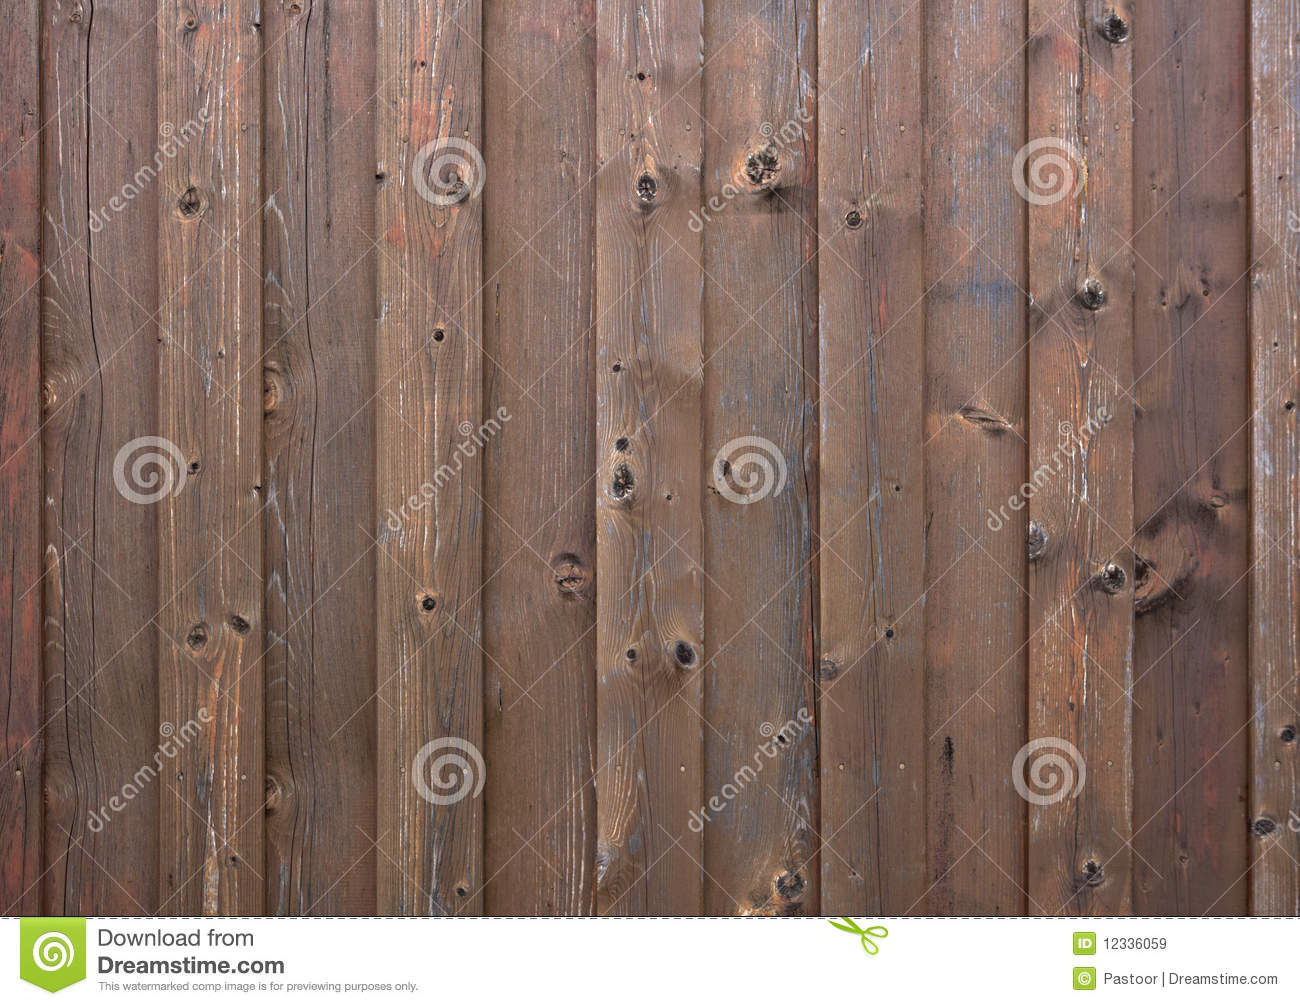 Marvelous photograph of Wooden Exterior Wall Royalty Free Stock Images Image: 12336059 with #86A526 color and 1300x1006 pixels